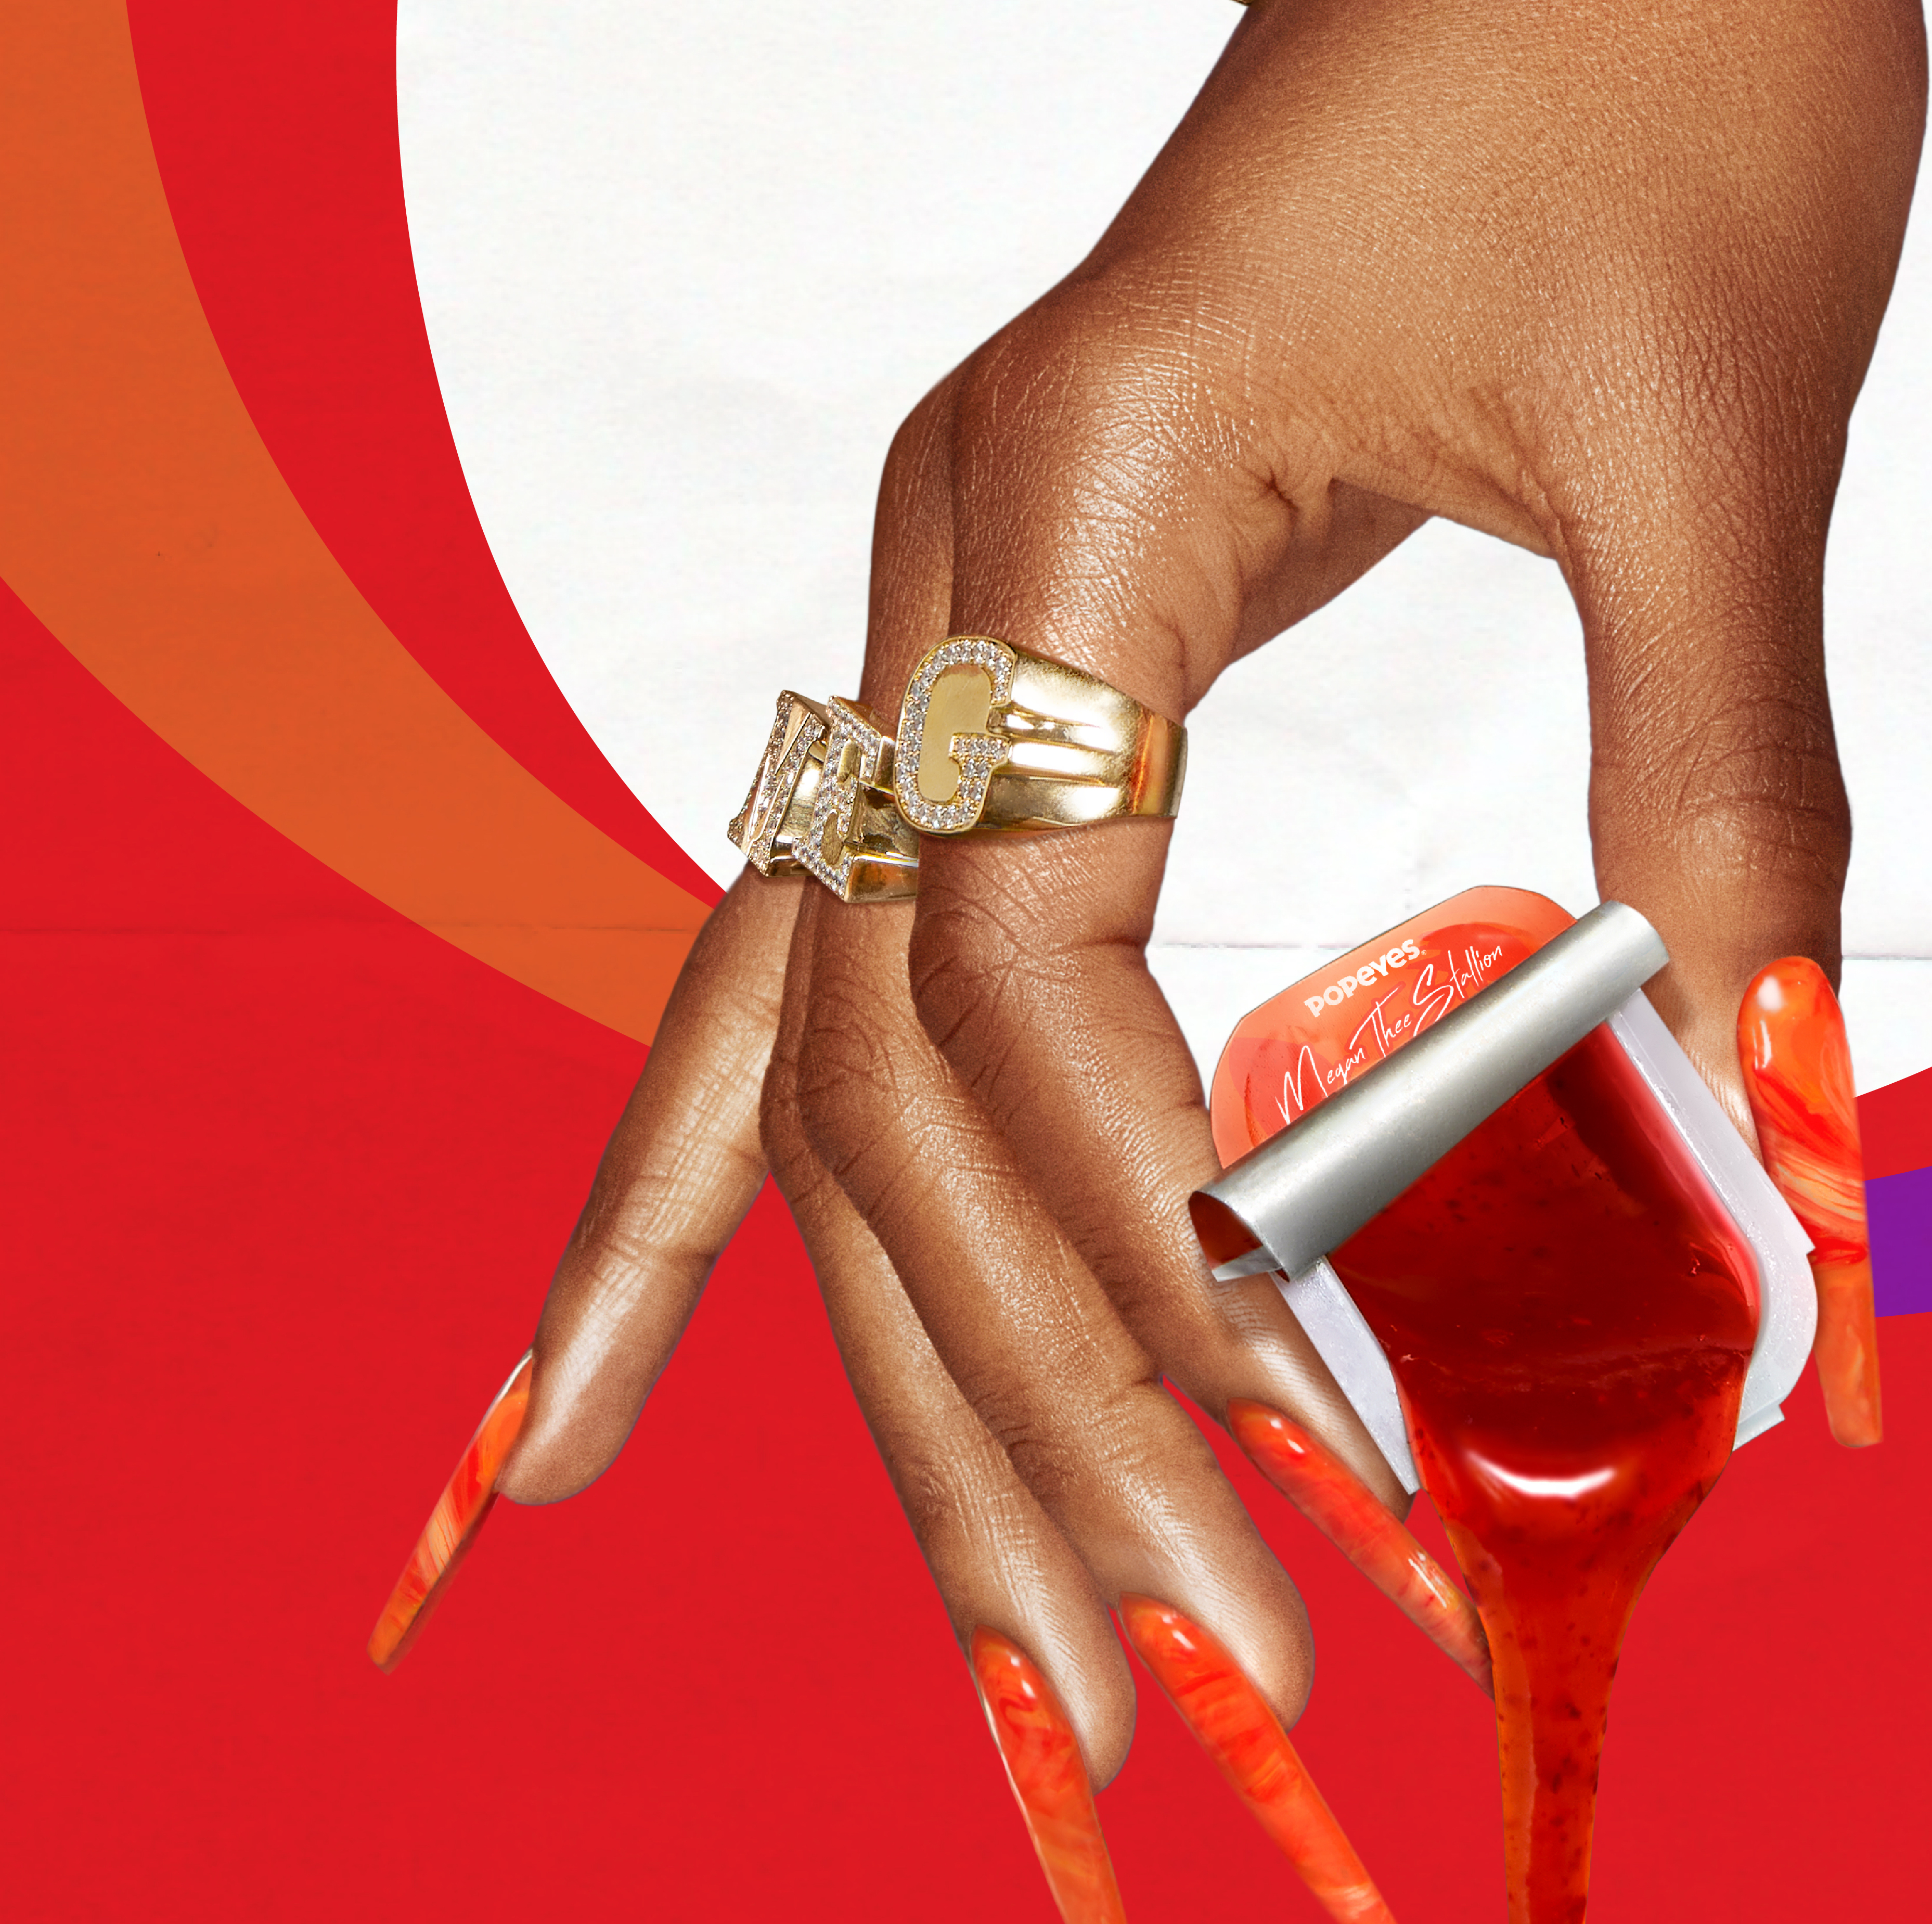 A graphic background, with a hand in the foreground, holding a small plastic container of dripping sauce.